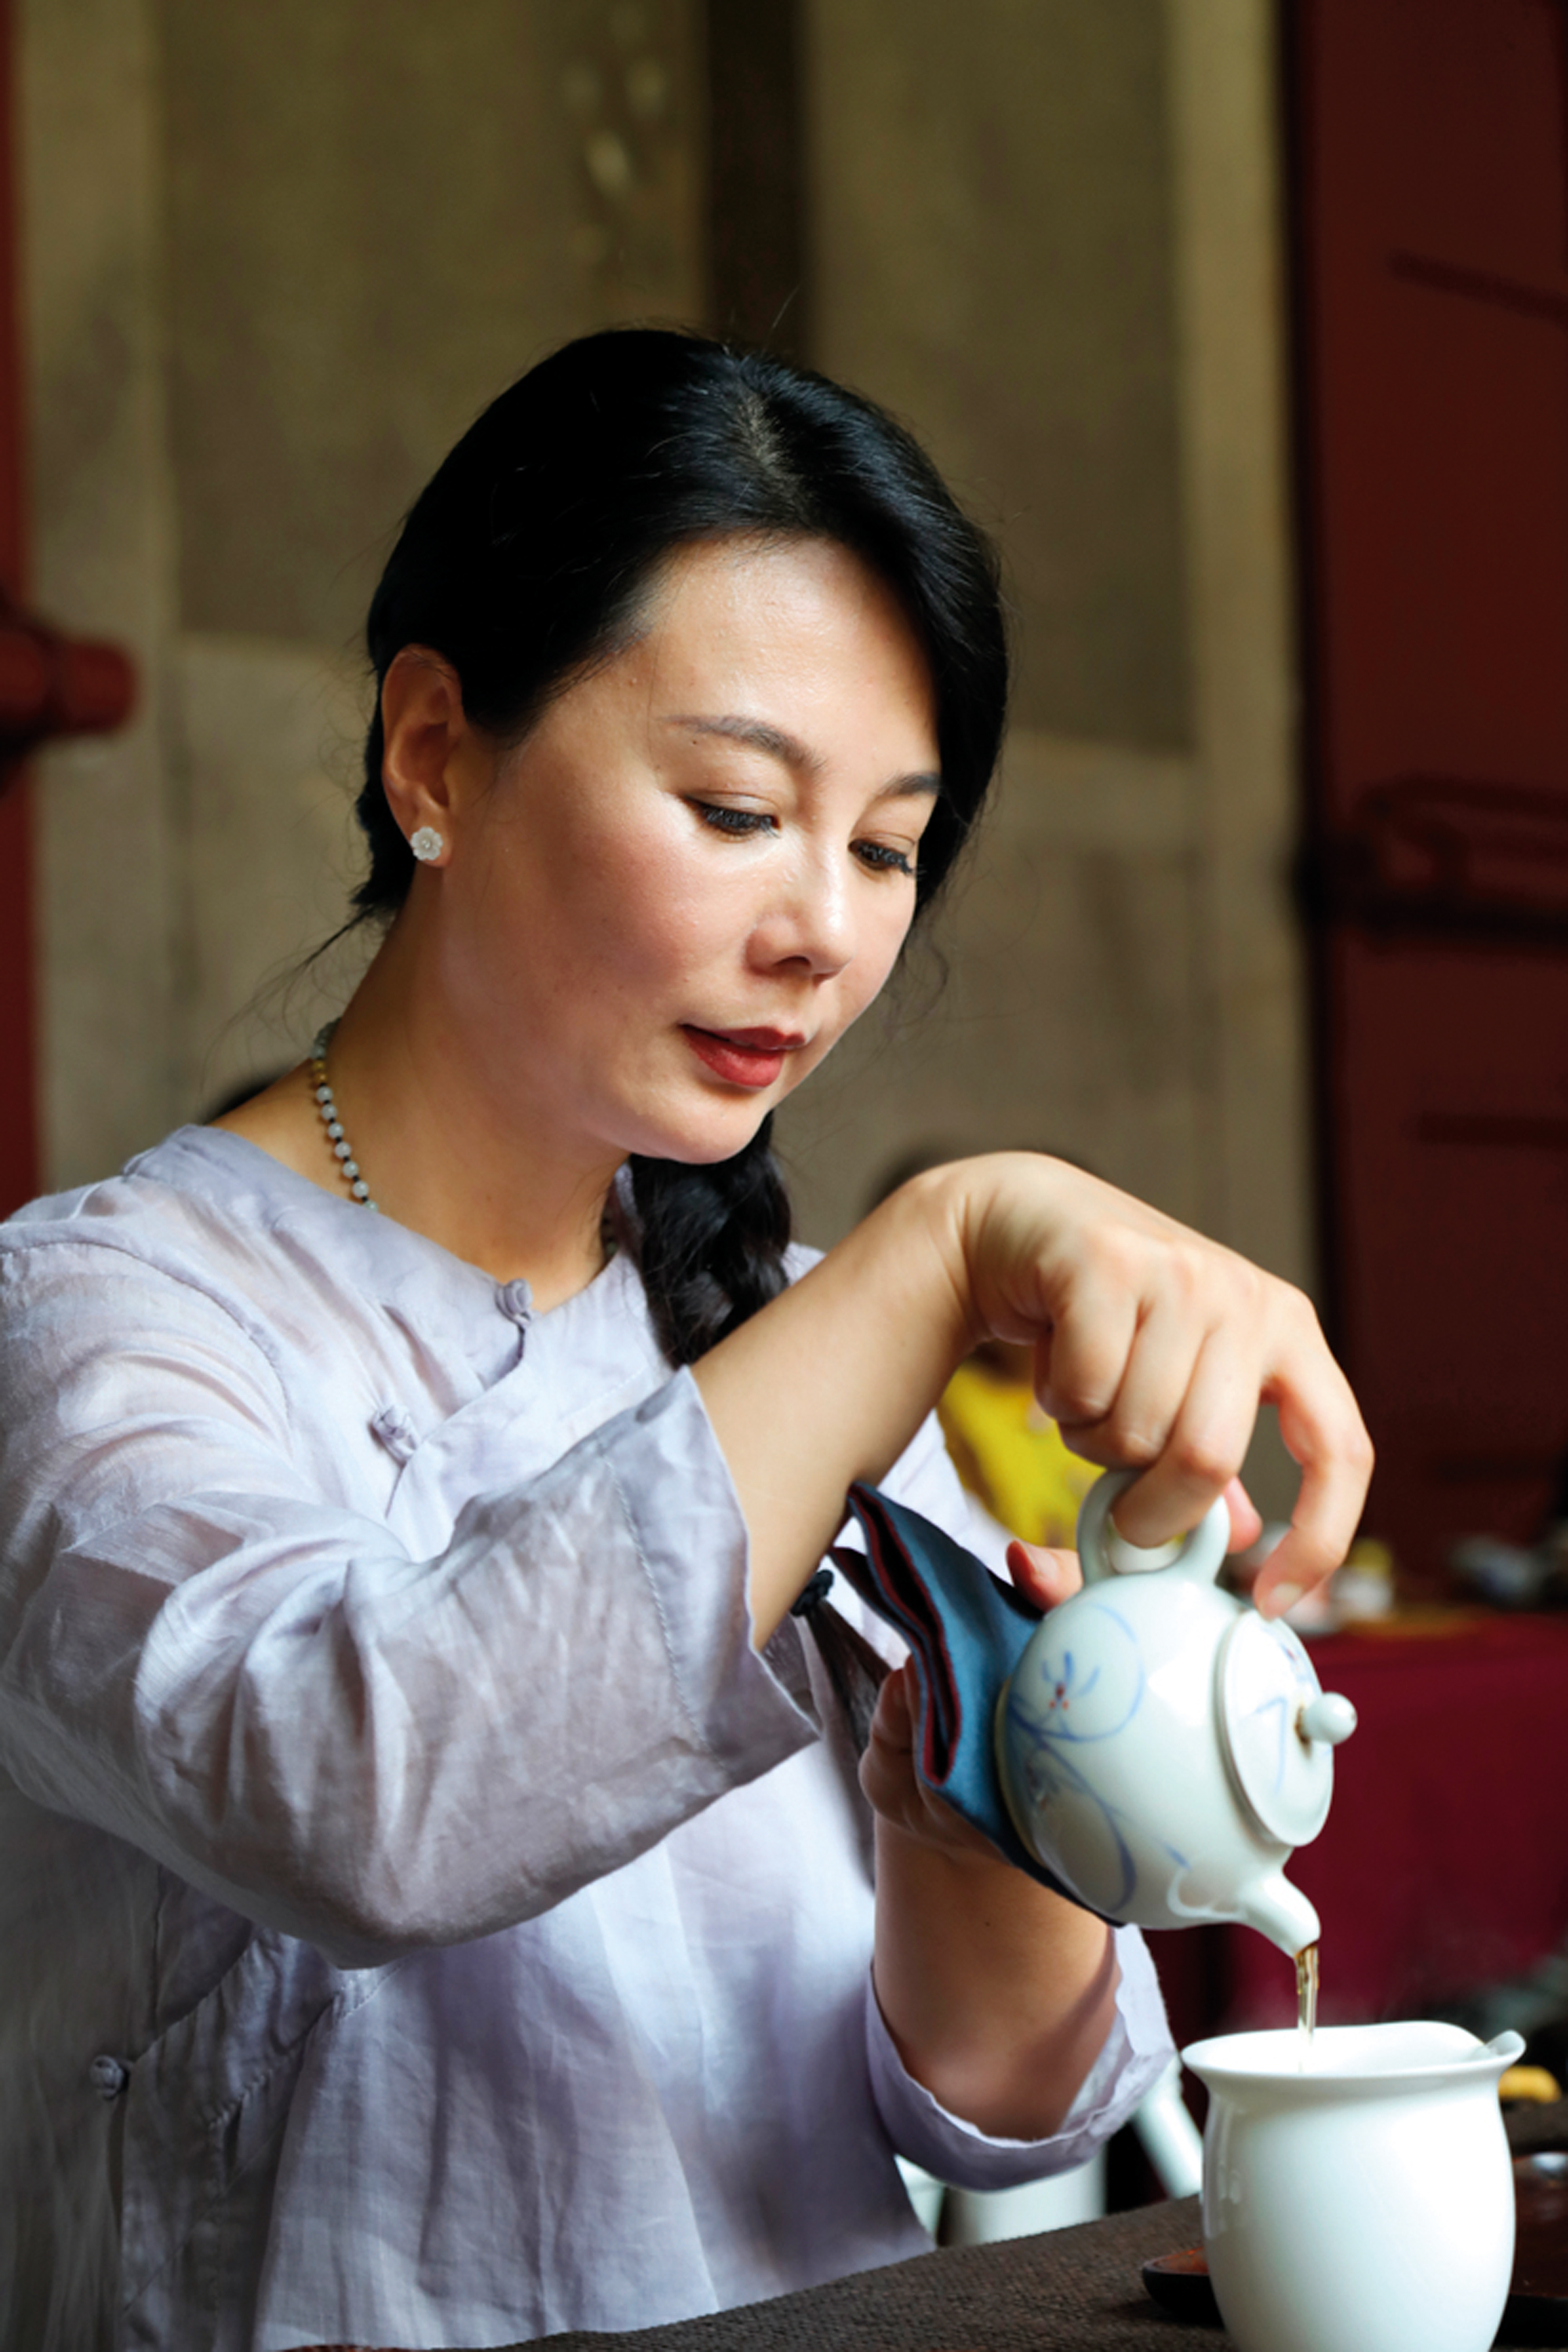 Kong Yiru, a 73rd-generation descendant of Confucius, conveys the Confucian virtues of benevolence, uprightness, propriety, knowledge and integrity through her handling of the tea ceremony.